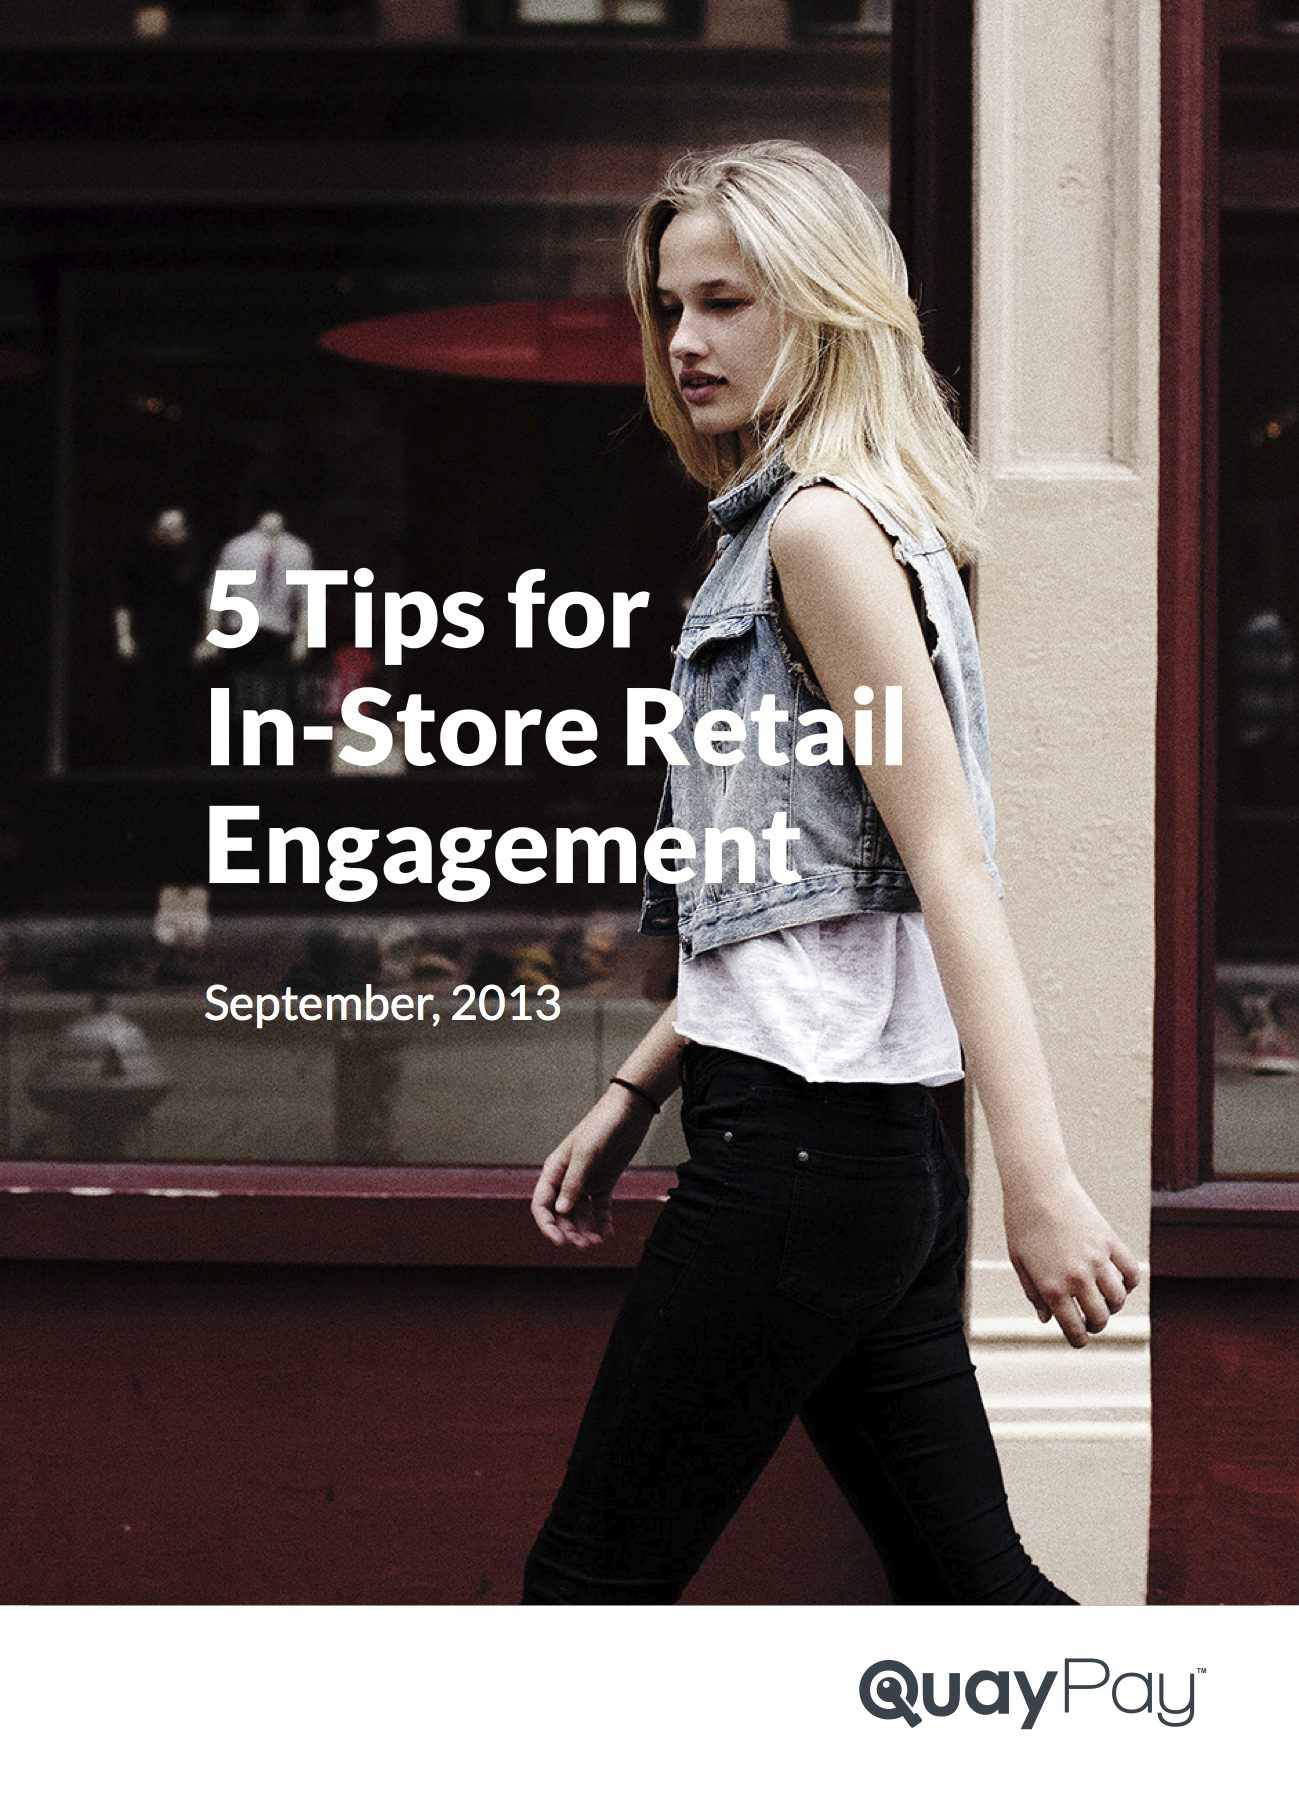 In-store Retail Engagement